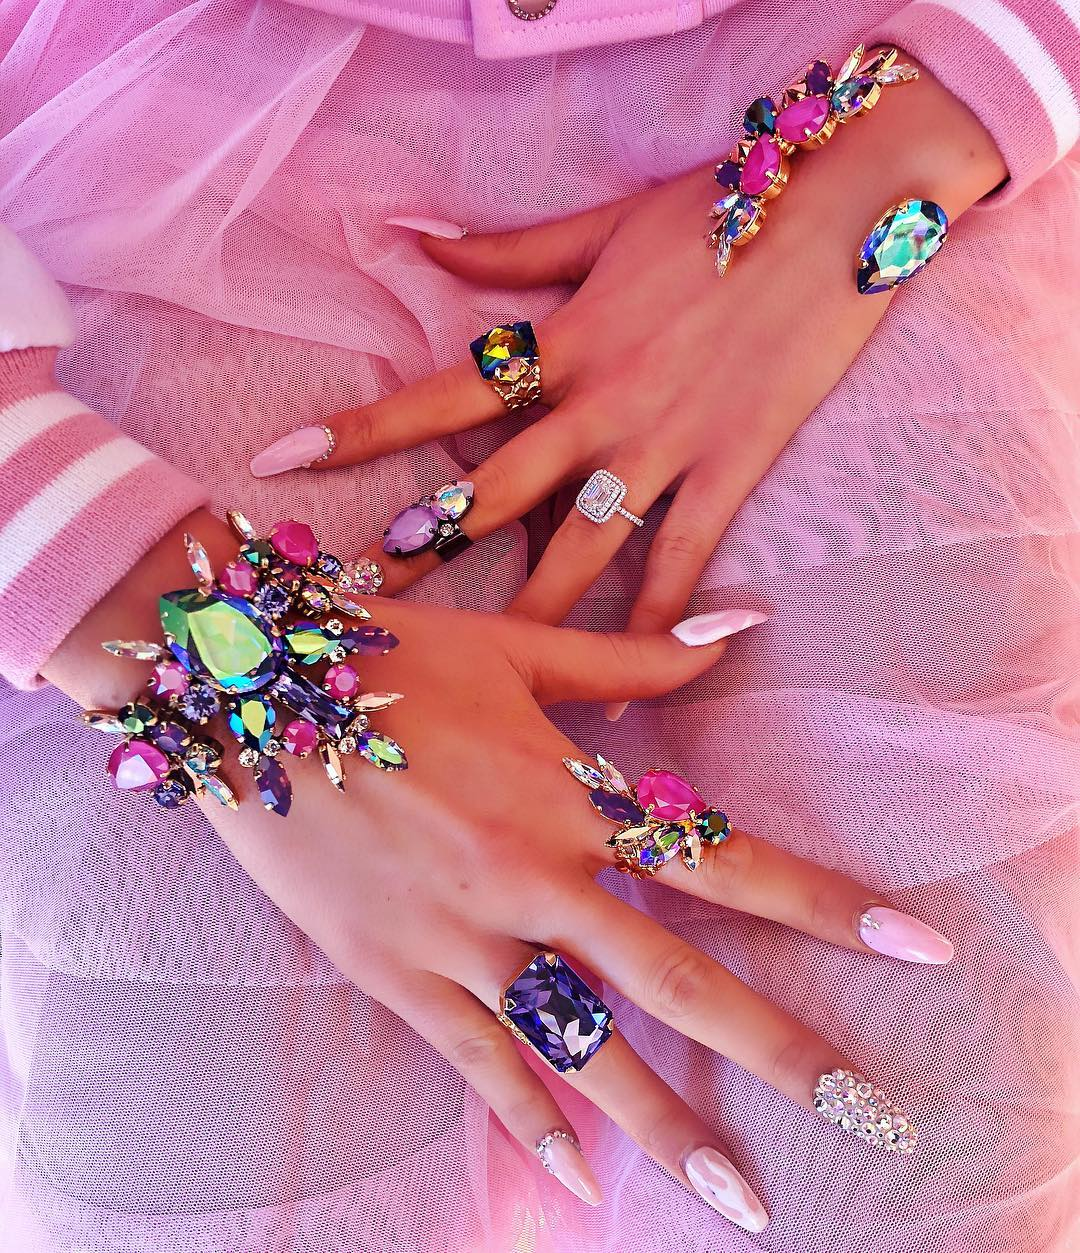 Best Jewelry Online: Cuff and Rings Multicolored Rhinestones Jewelry Online